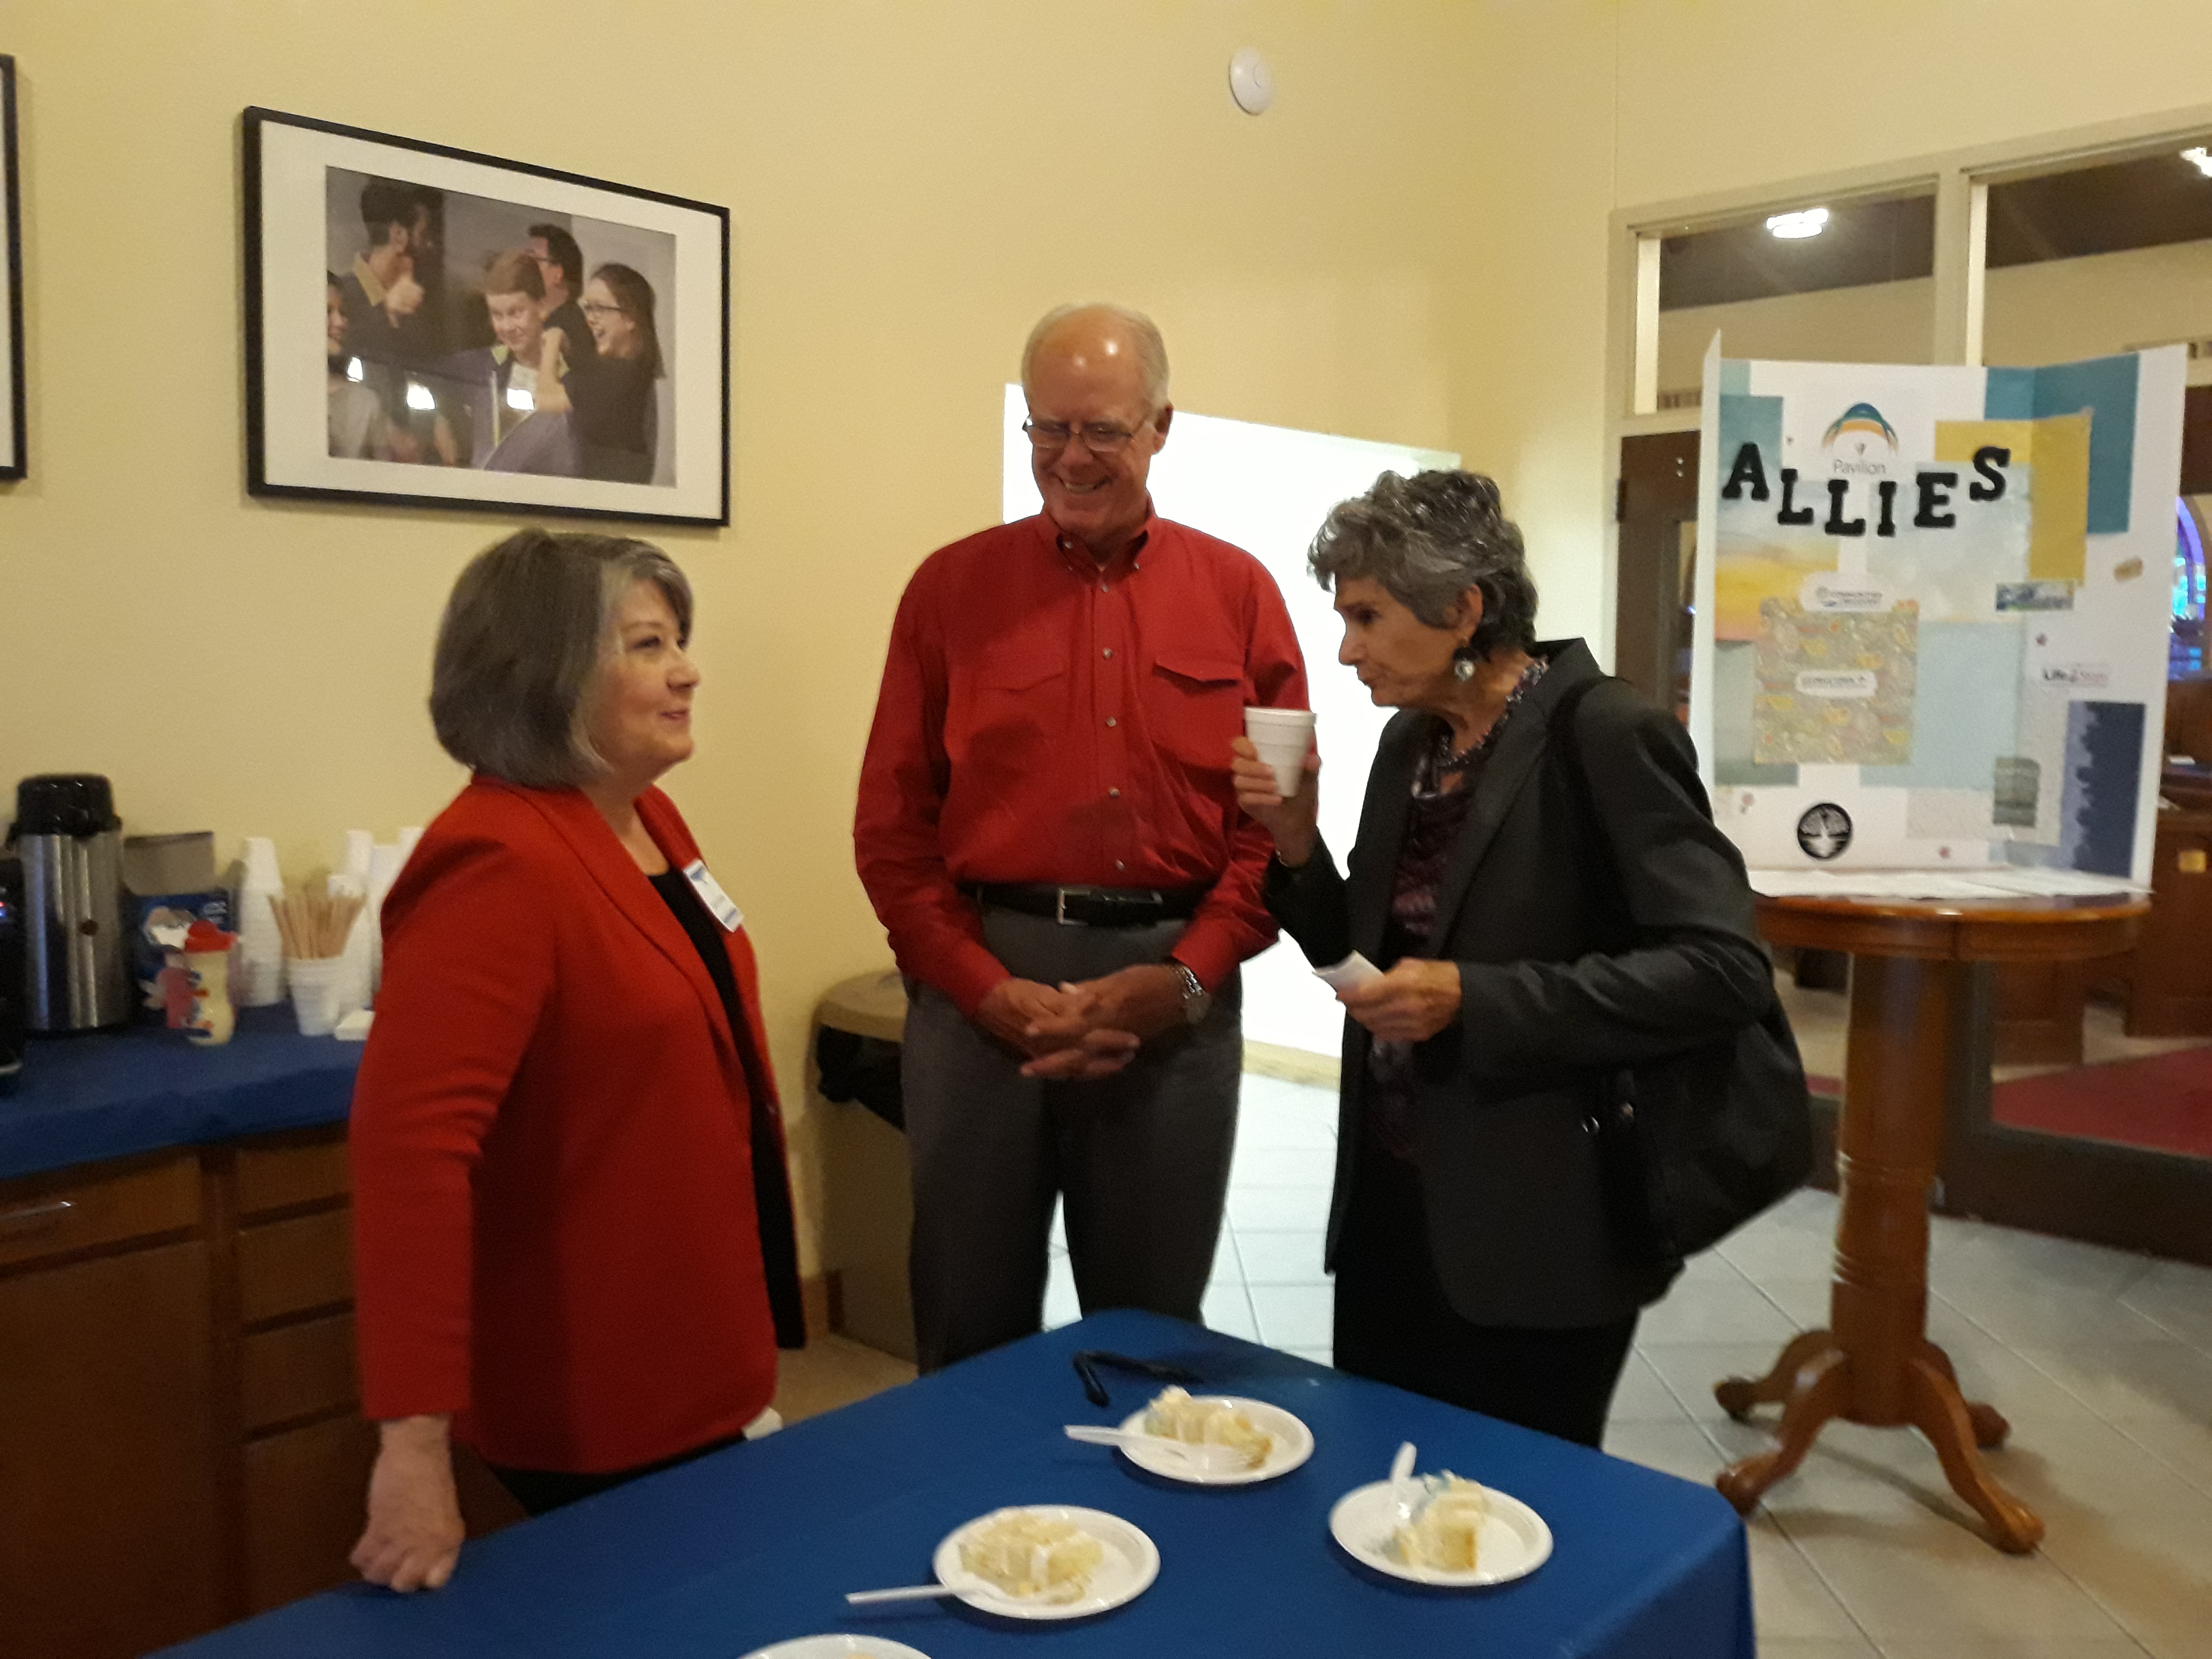 Commissioner Cook chats with Pavilion volunteers Laura Lantrip and her husband Lynn, Principal with GRS Consulting.